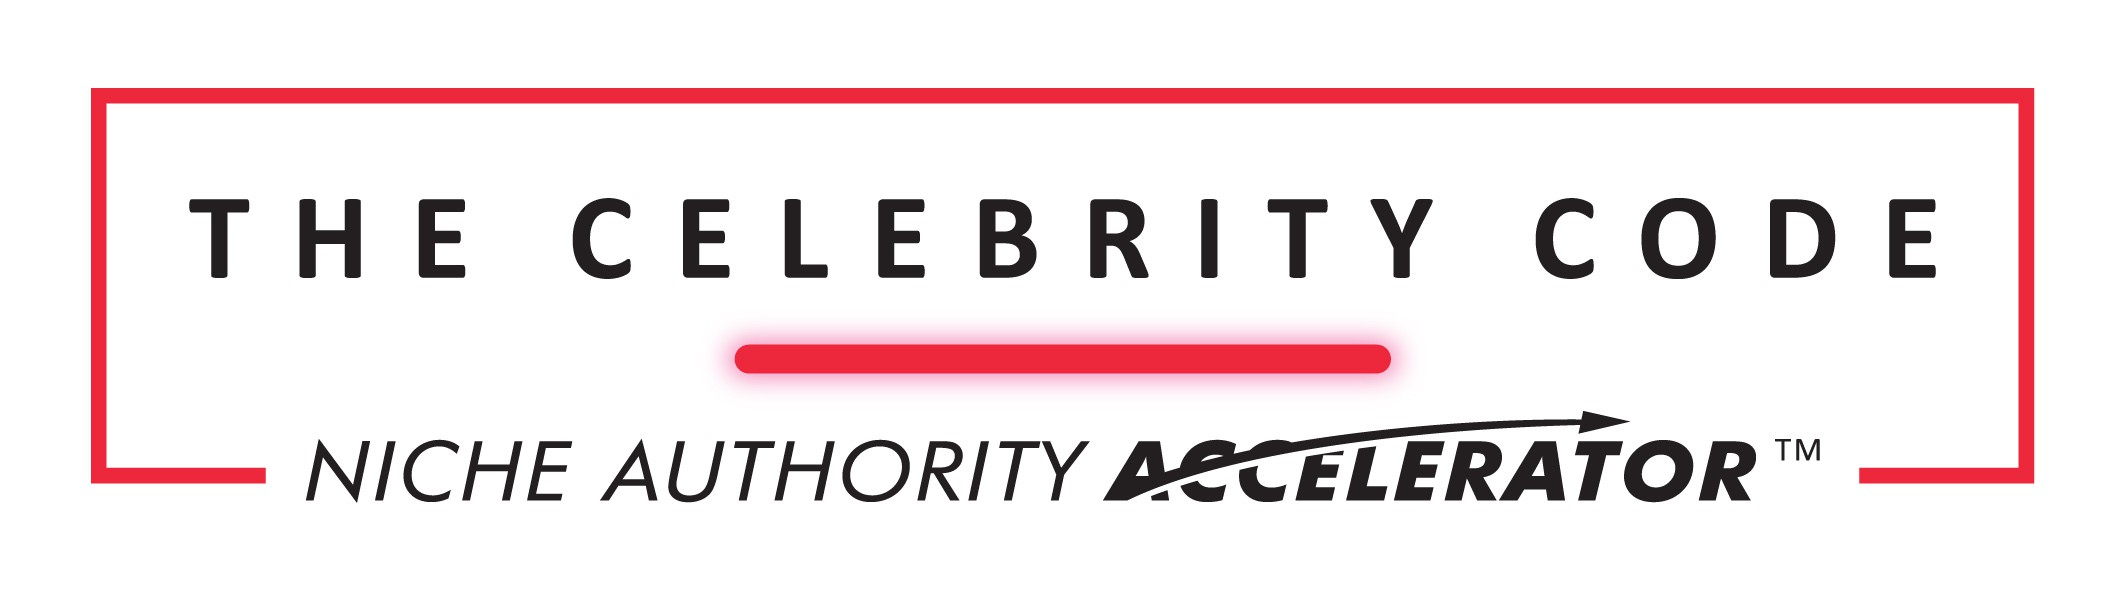 New Logo Needed For My Offer: The Celebrity Code - Niche Authority Accelerator™